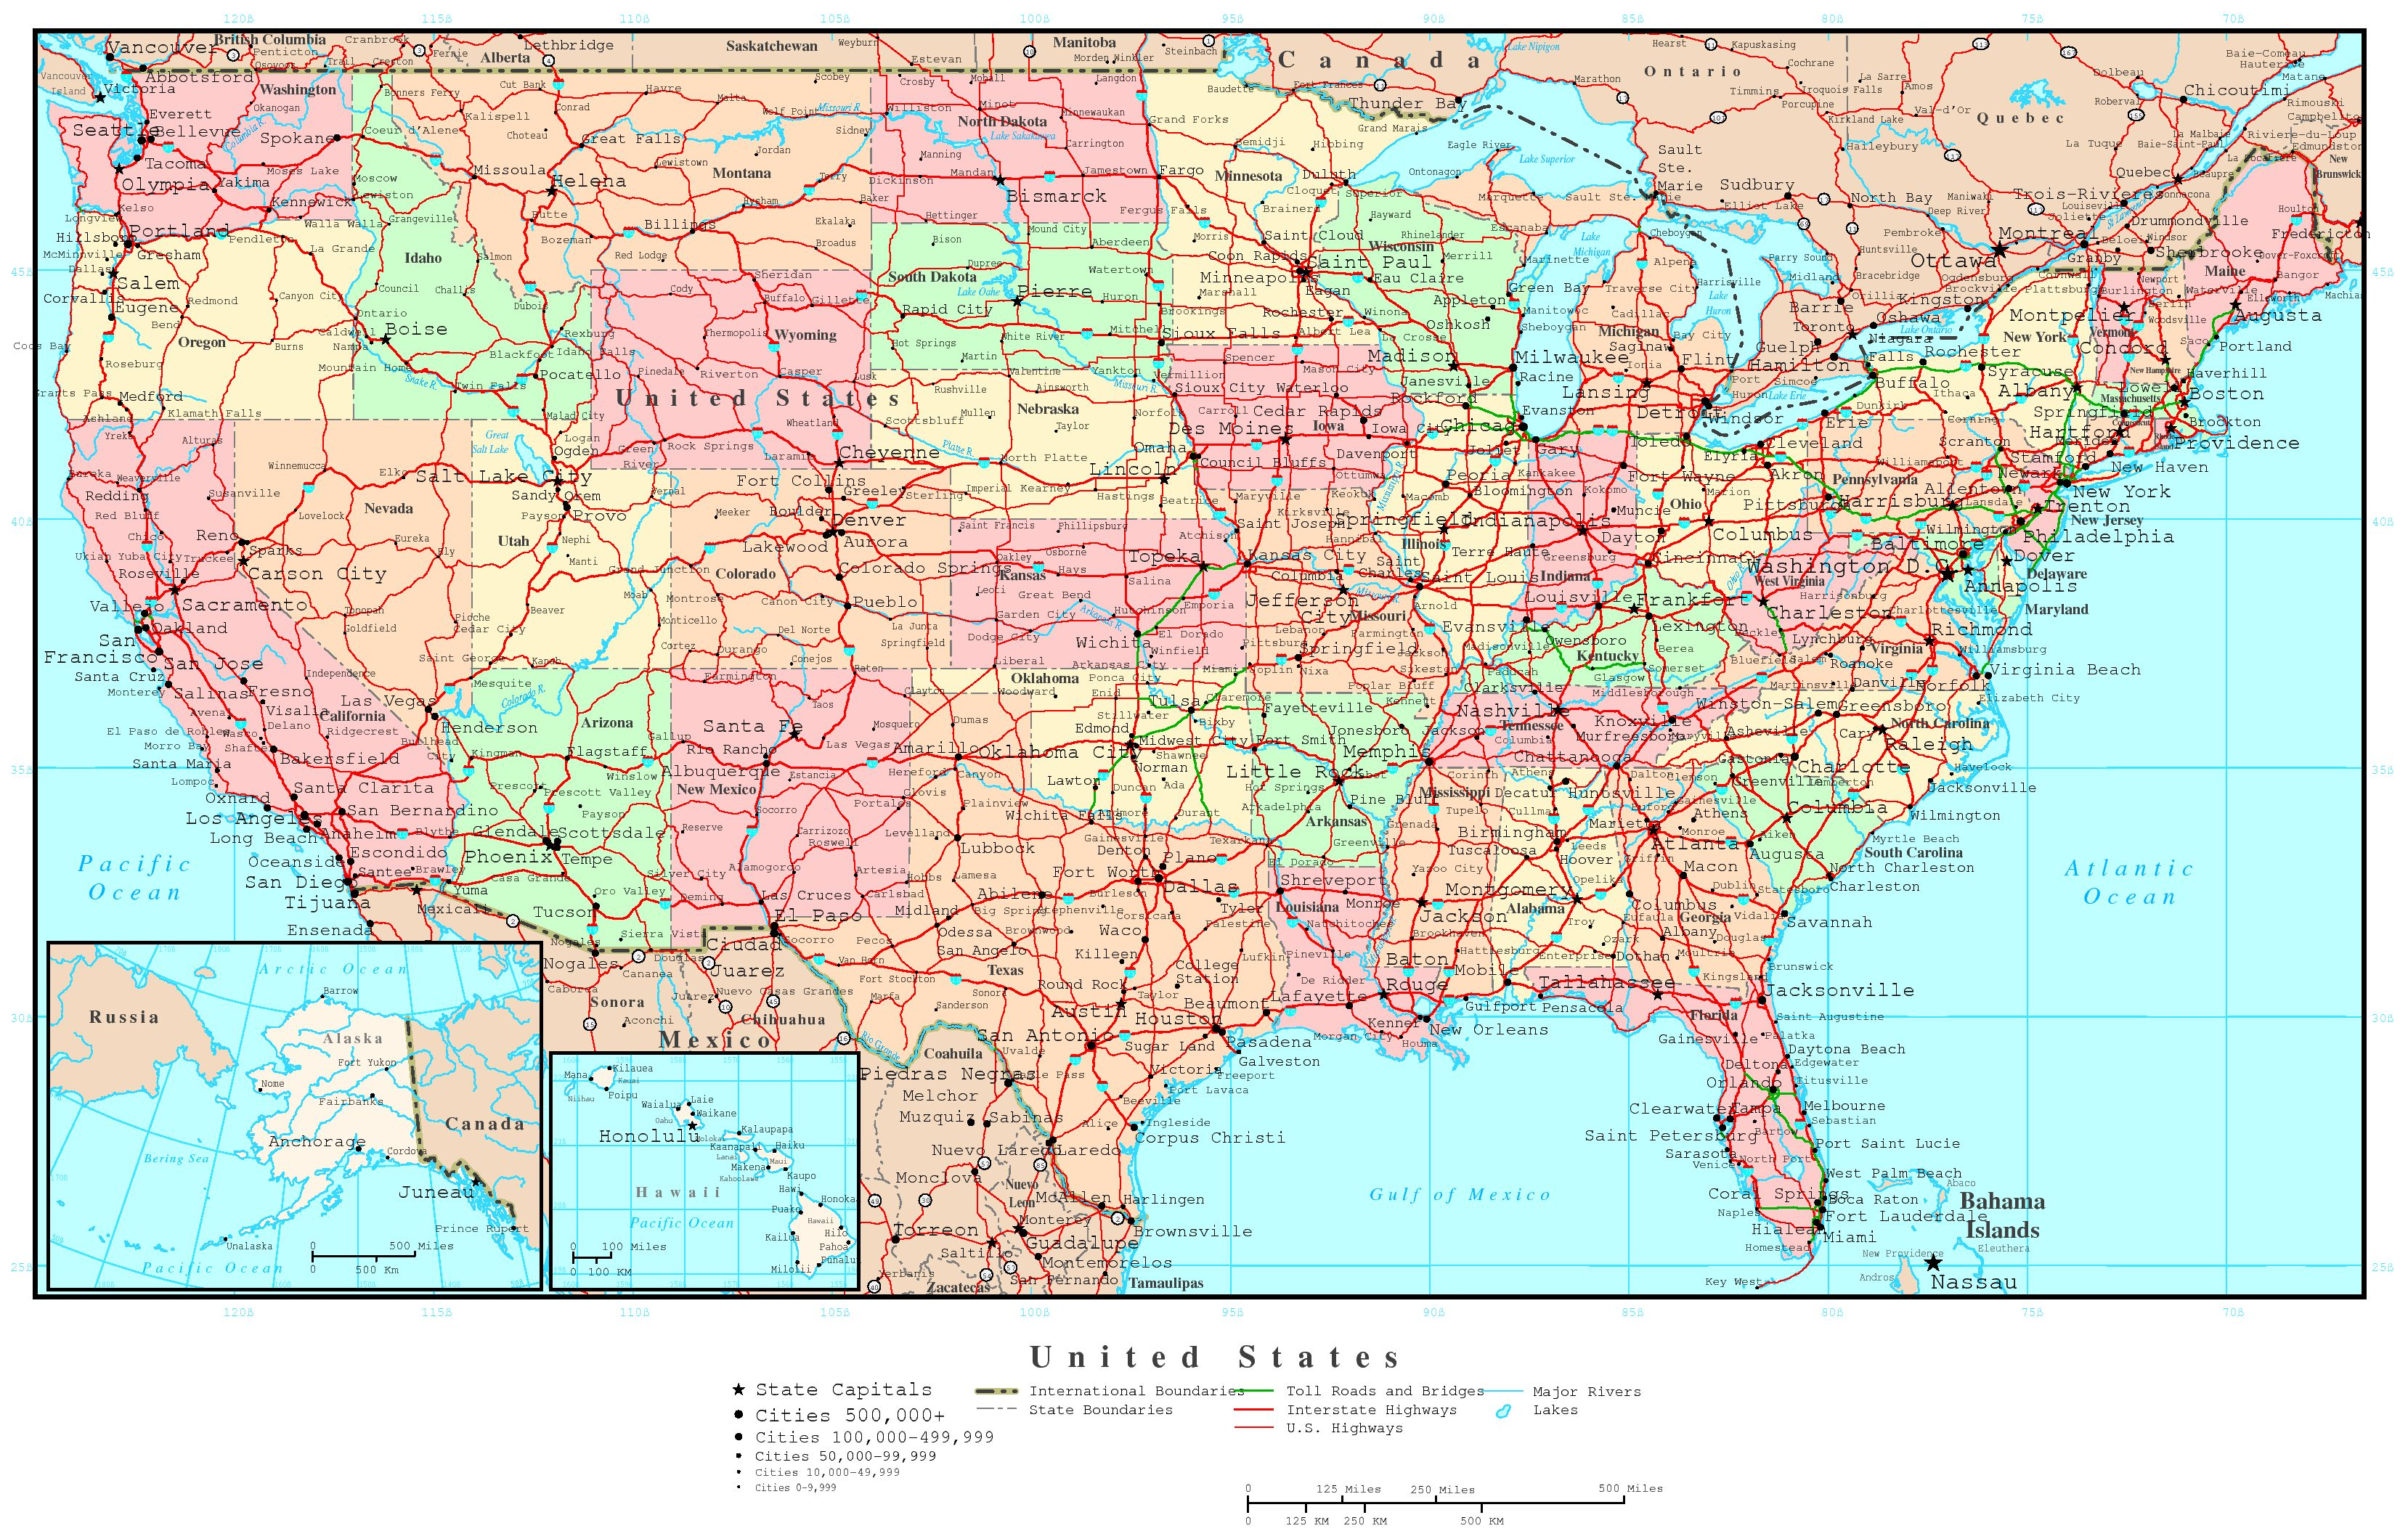 Road Map Usa States Road Map Usa States Road Map Usa States Road - Us map states with cities